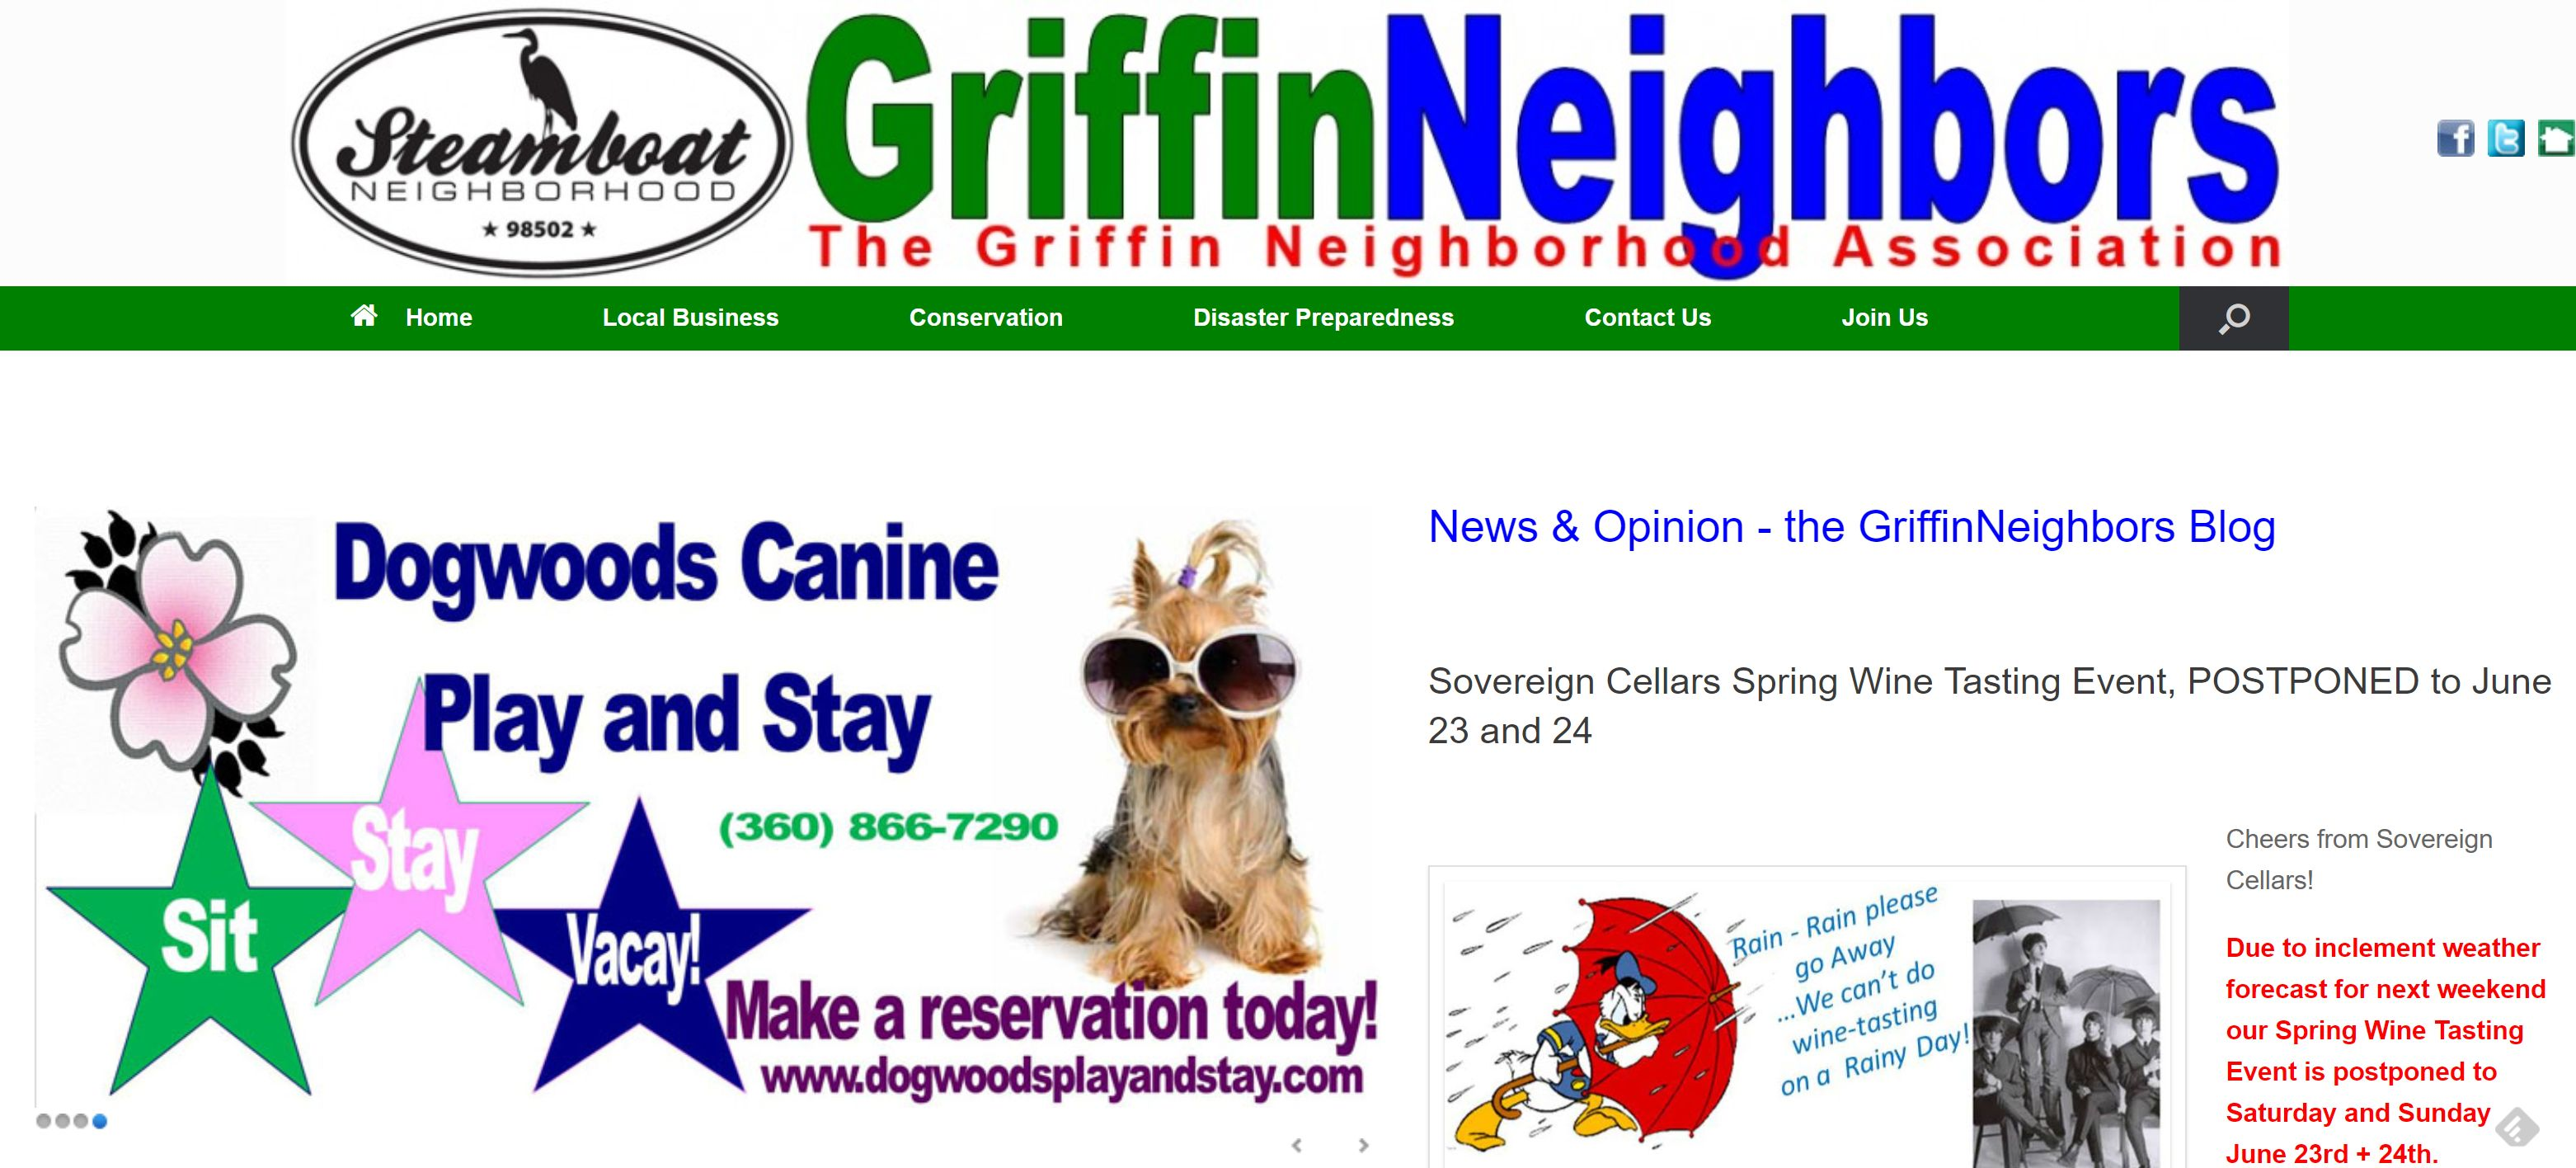 Your Local Business and Us – GriffinNeighbors